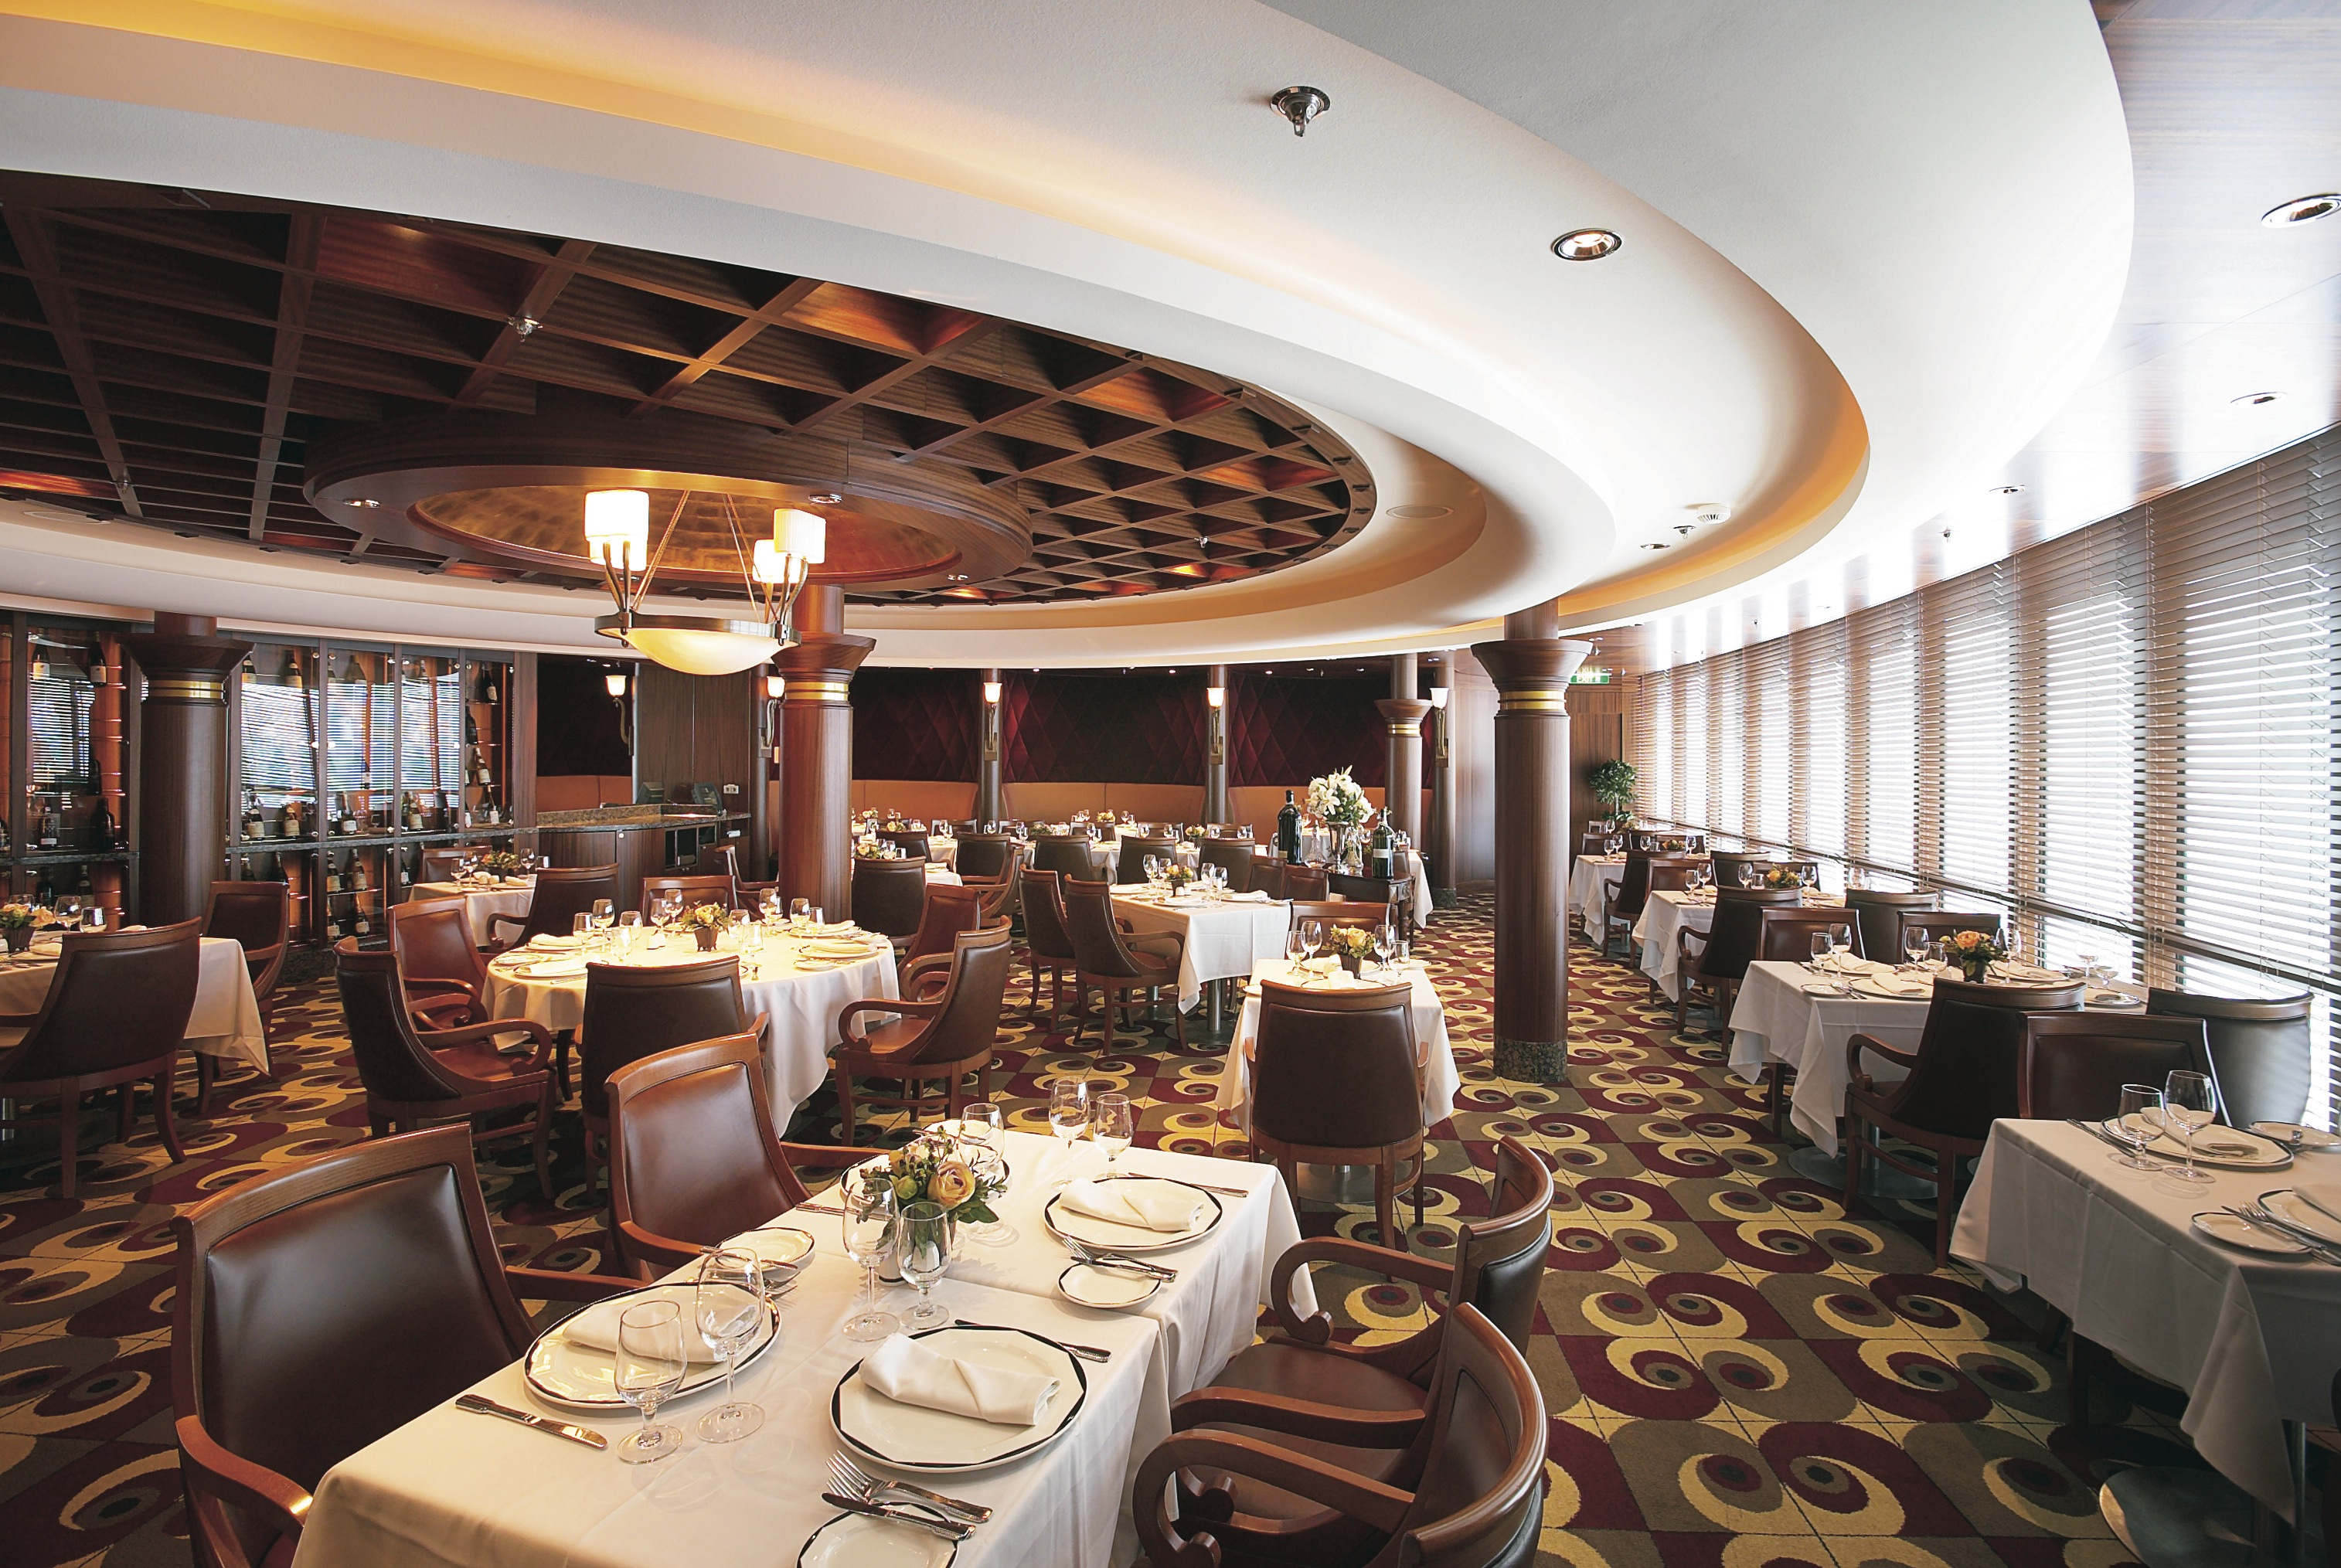 Royal Caribbean International Jewel of the Seas Interior Chops Grille 4.jpeg